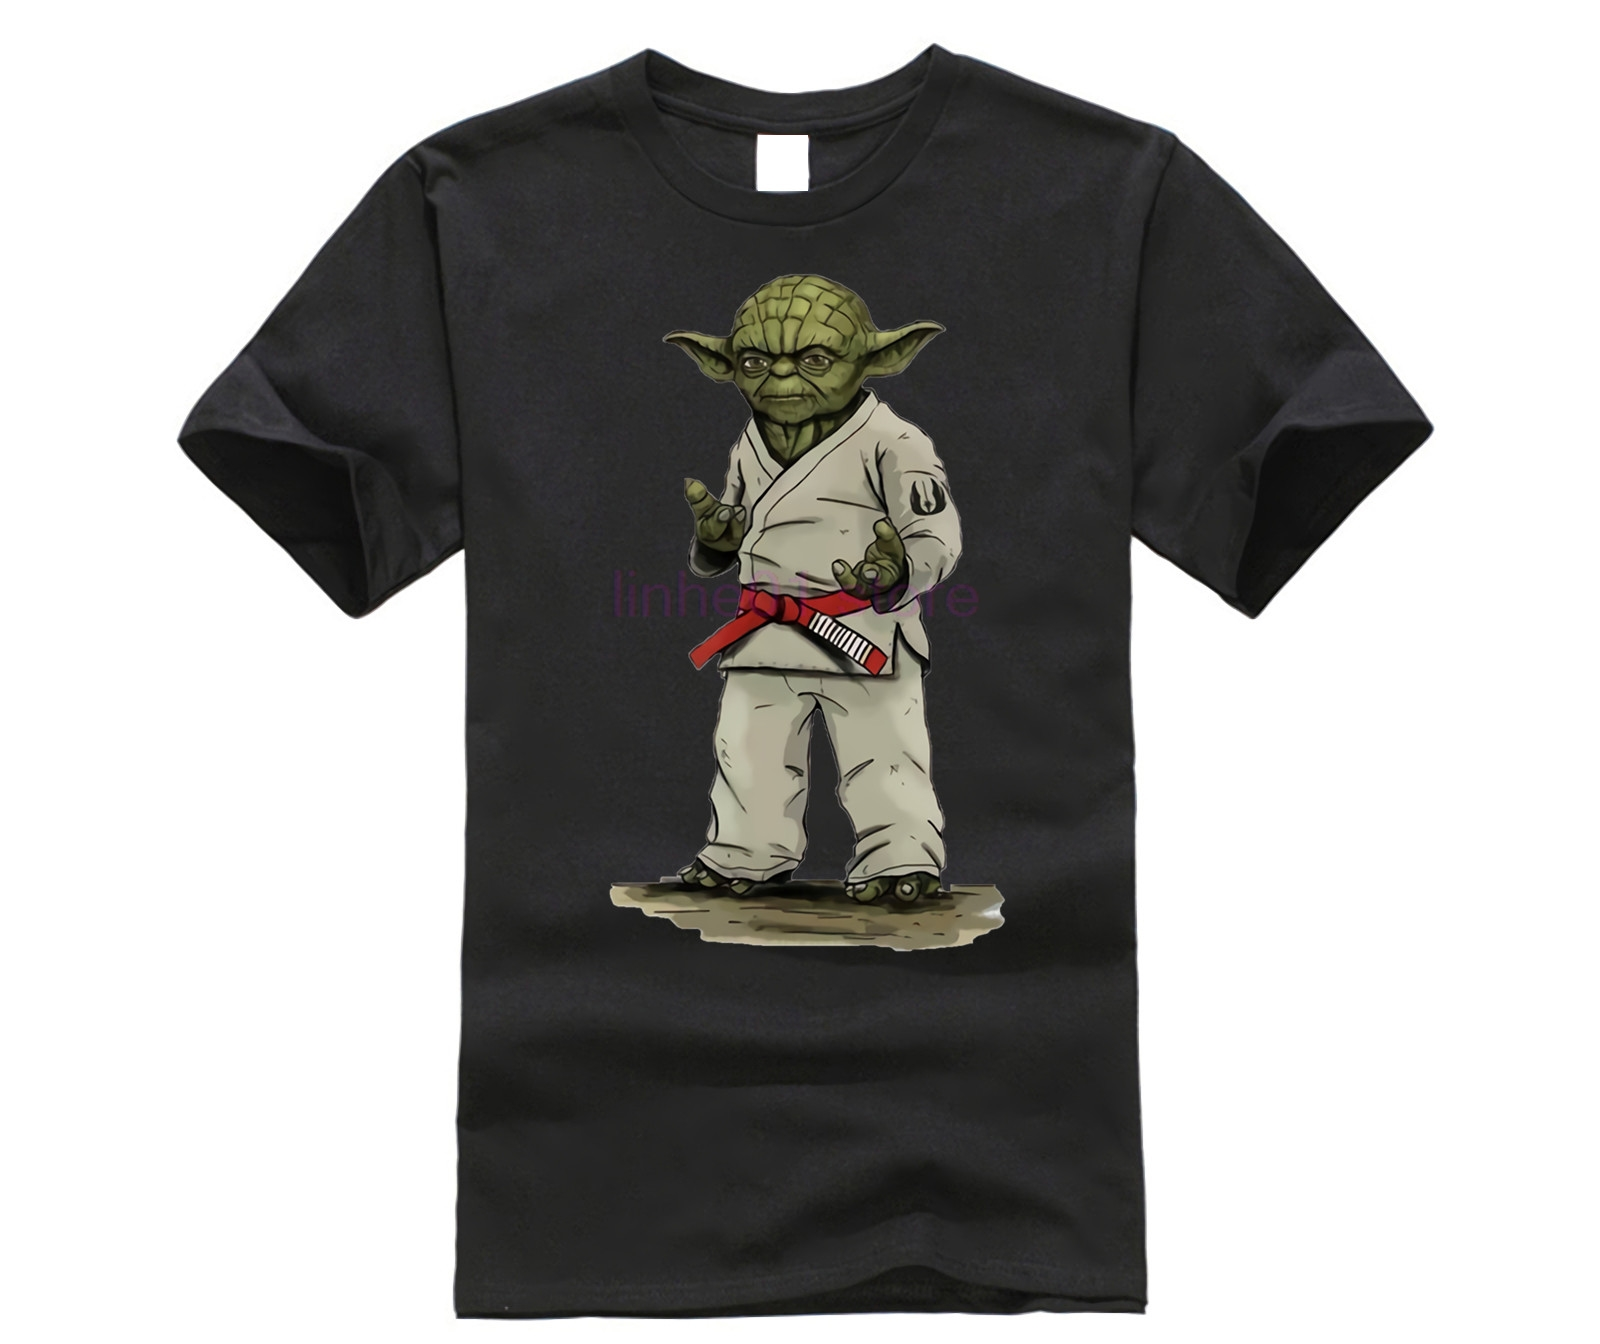 Star Wars   T     Shirt   Teenage Newest Unique Tshirts Yoda Normal Jiu Jitsu   T  -  Shirt   Men Summer Crew Neck Teenboys Clothes Star Wars